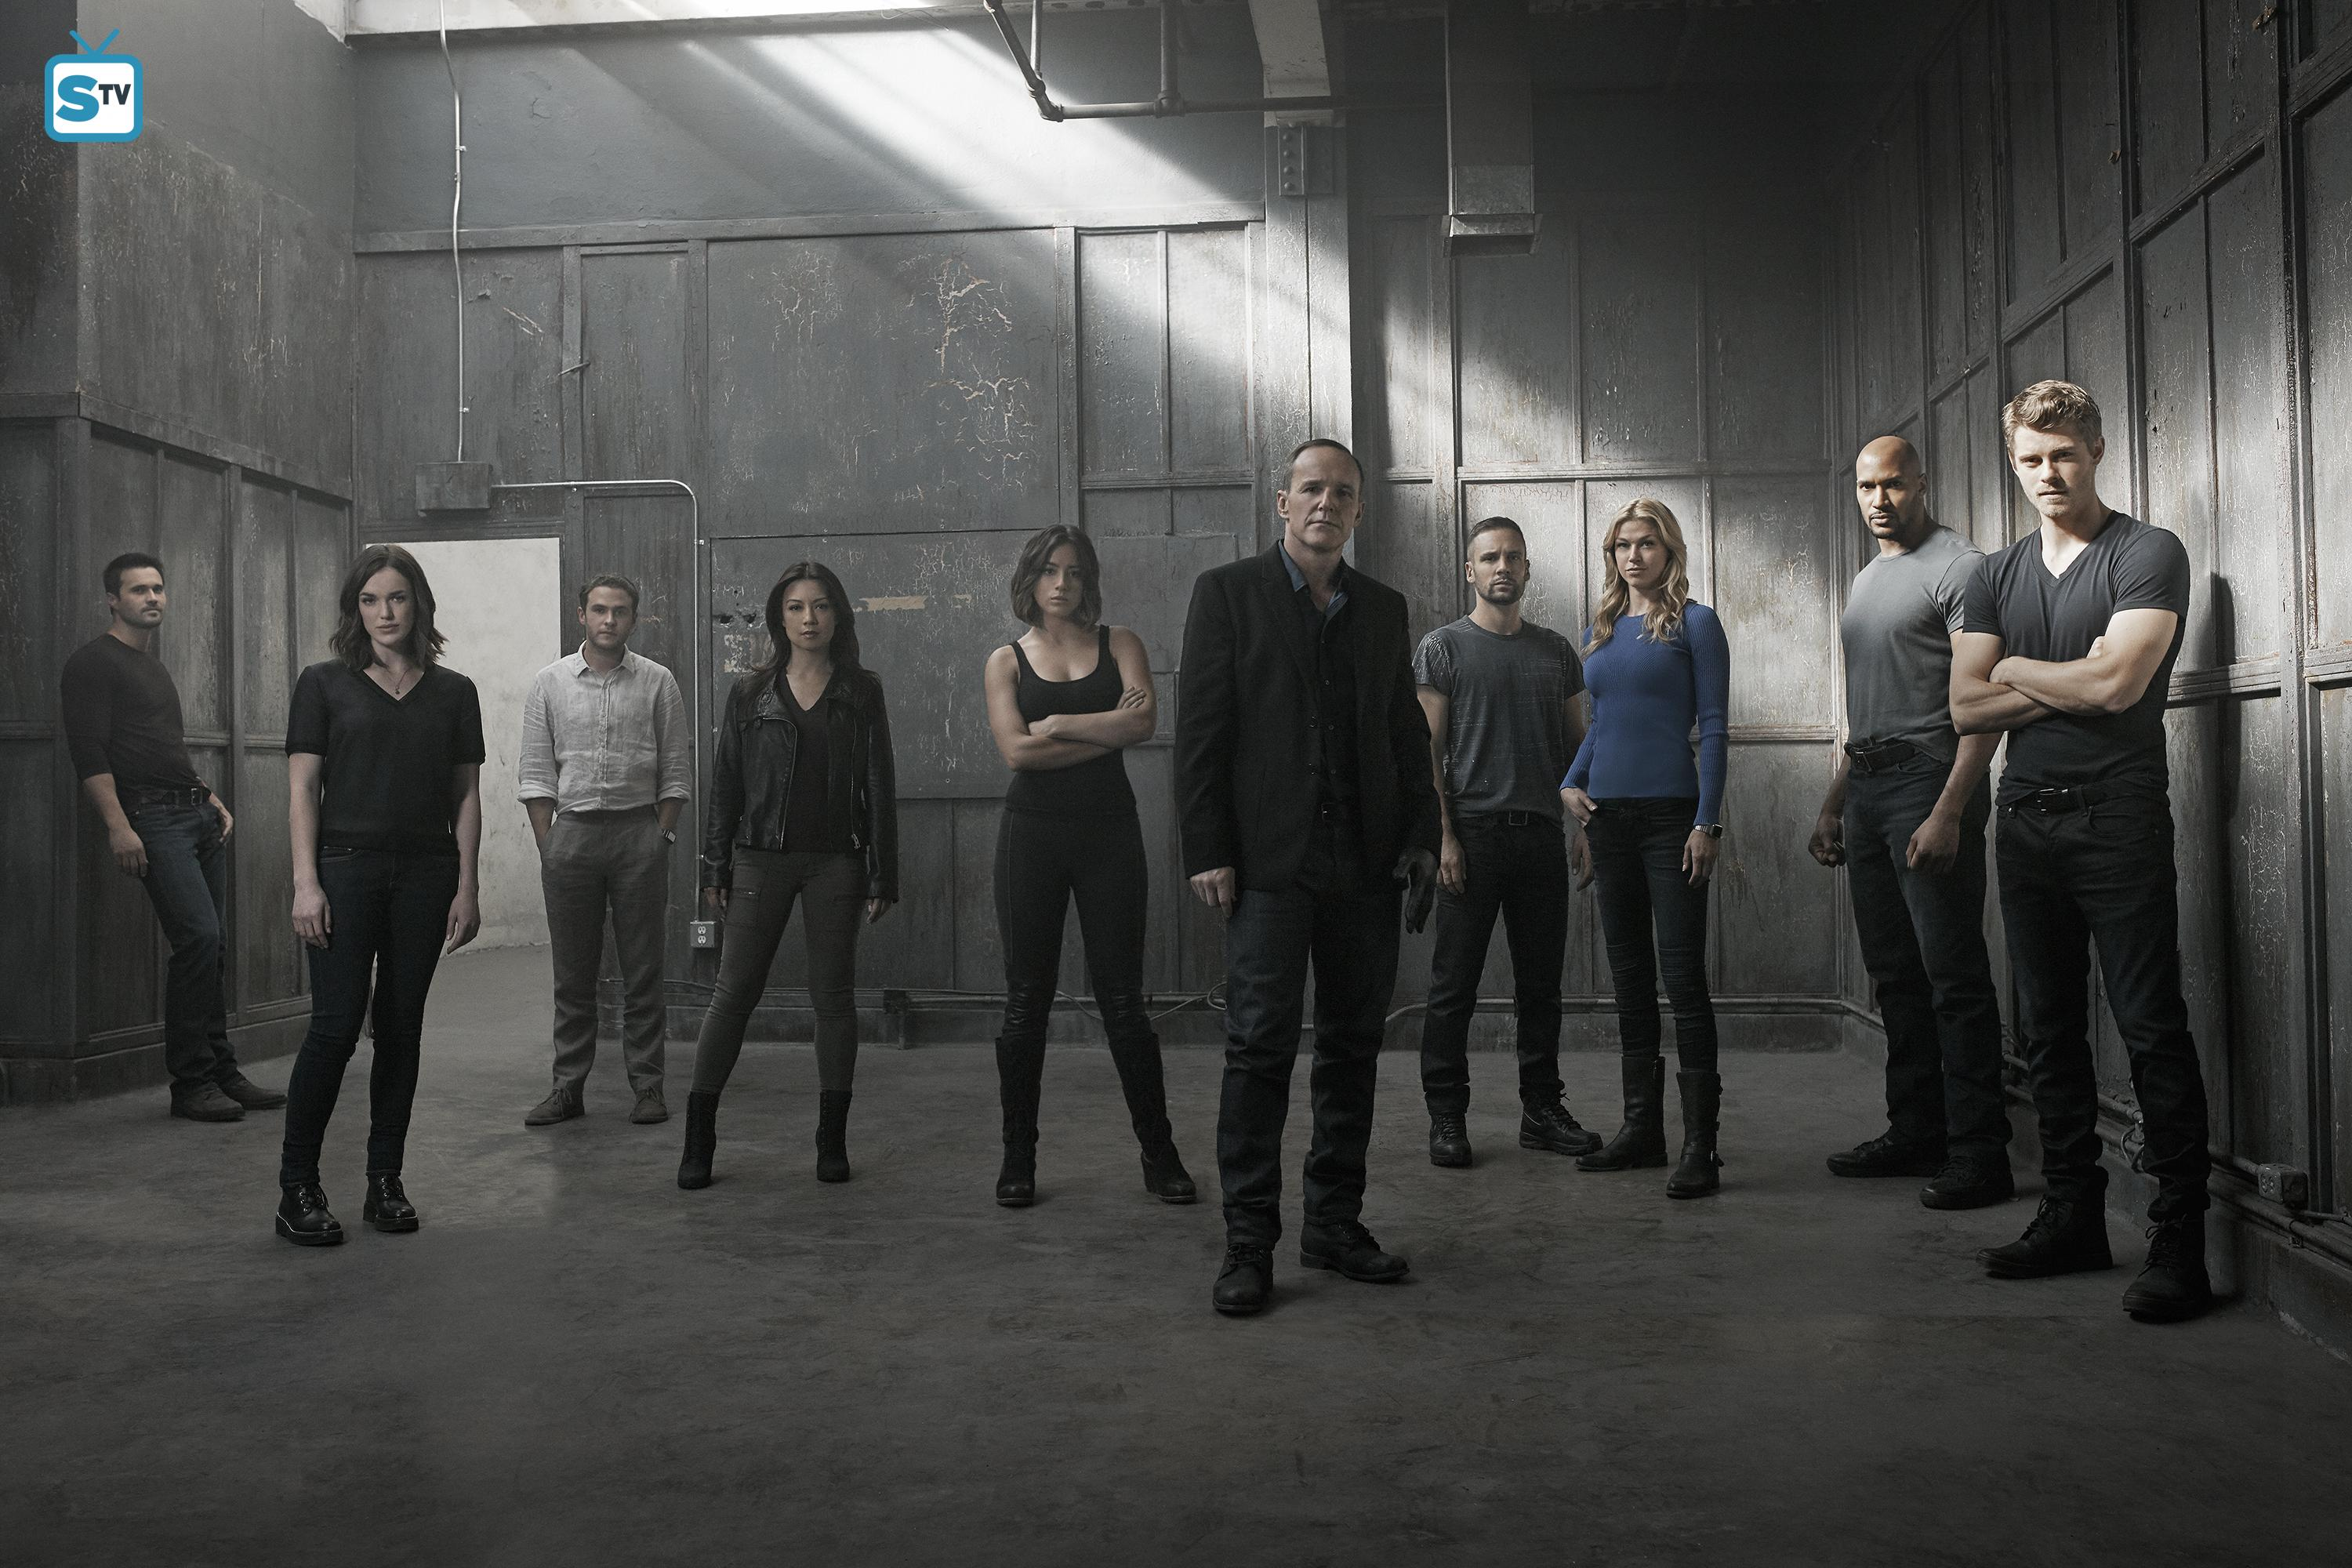 Agents of SHIELD S03 cast